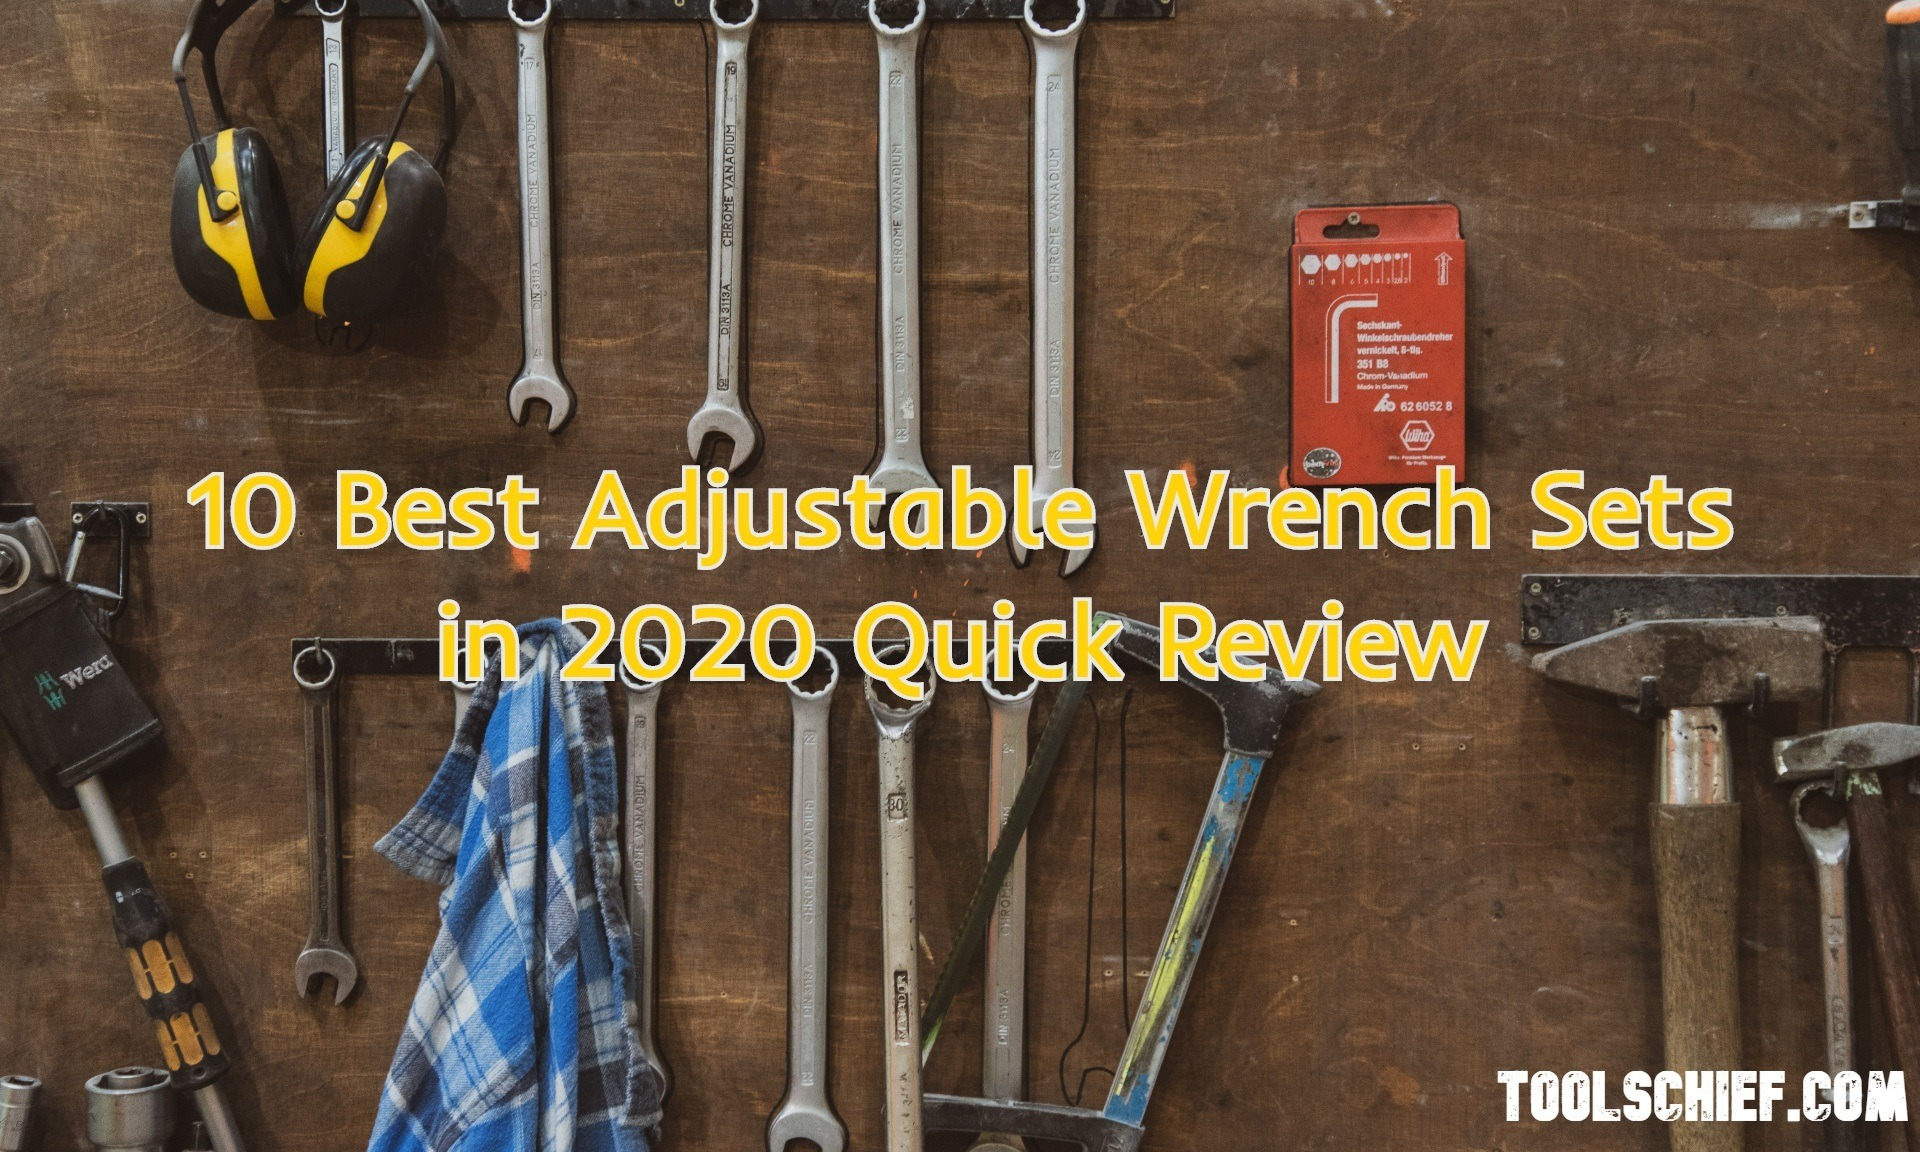 10 Best Adjustable Wrench Sets in 2021